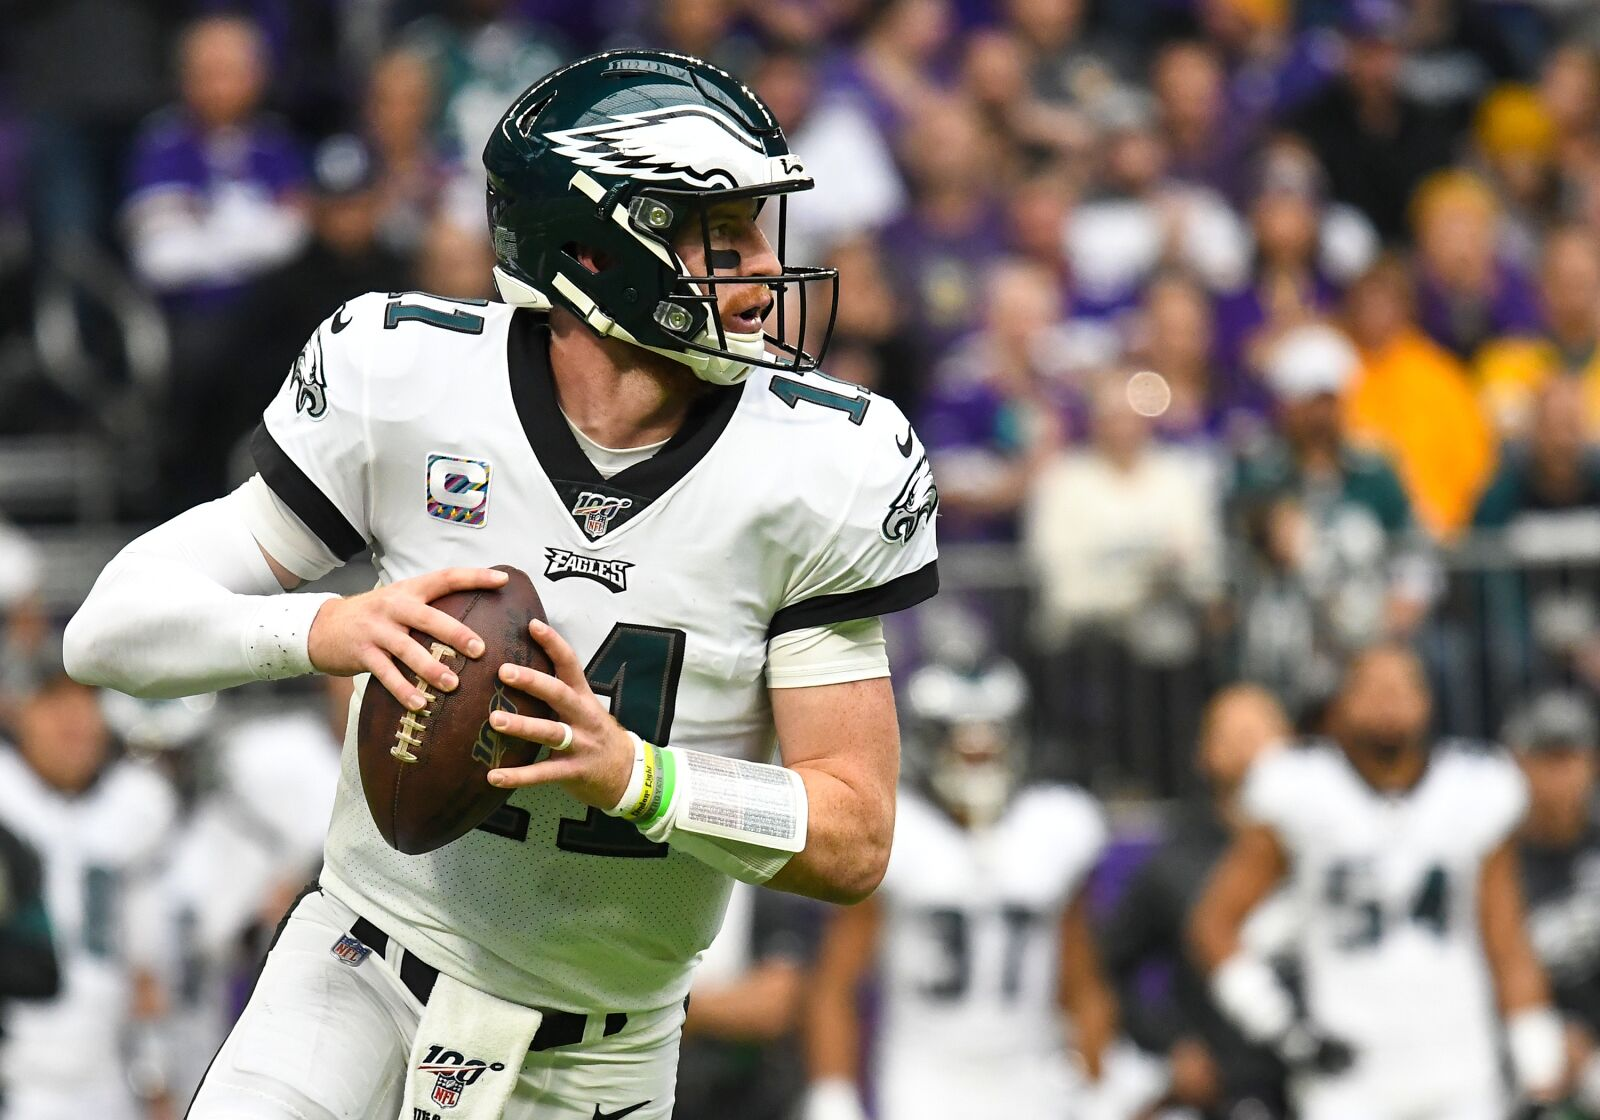 Is it time to worry about Eagles in the NFC playoff picture?